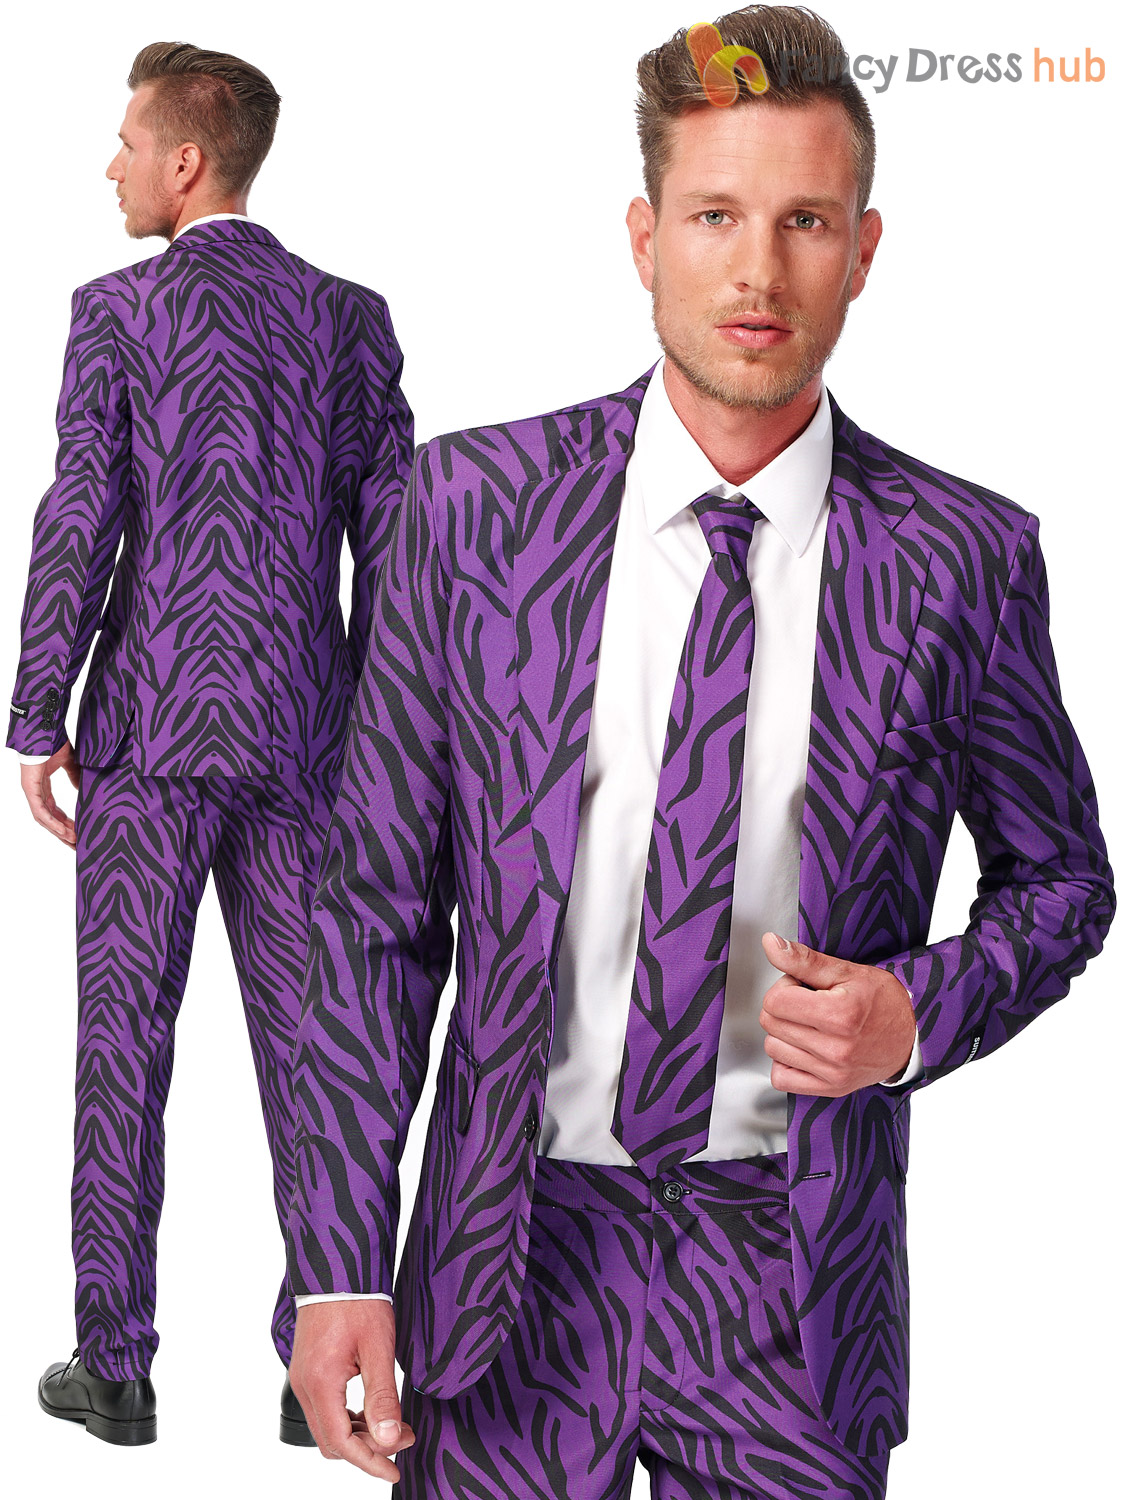 Novelty Suits. Our novelty, party and stag do style fancy dress suits! Make your big night a memorable one with our range of hilarious and high quality fancy dress suits.